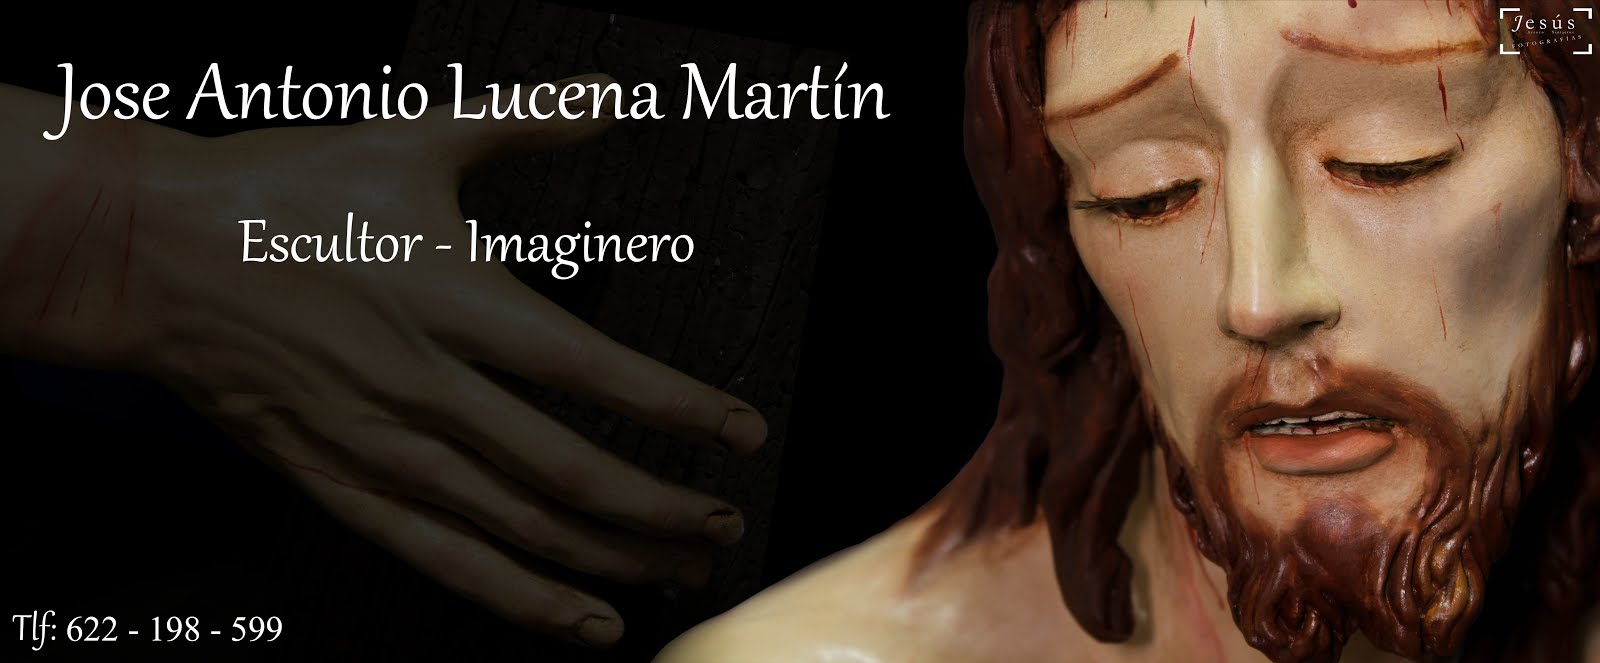 Imaginero Antonio Lucena